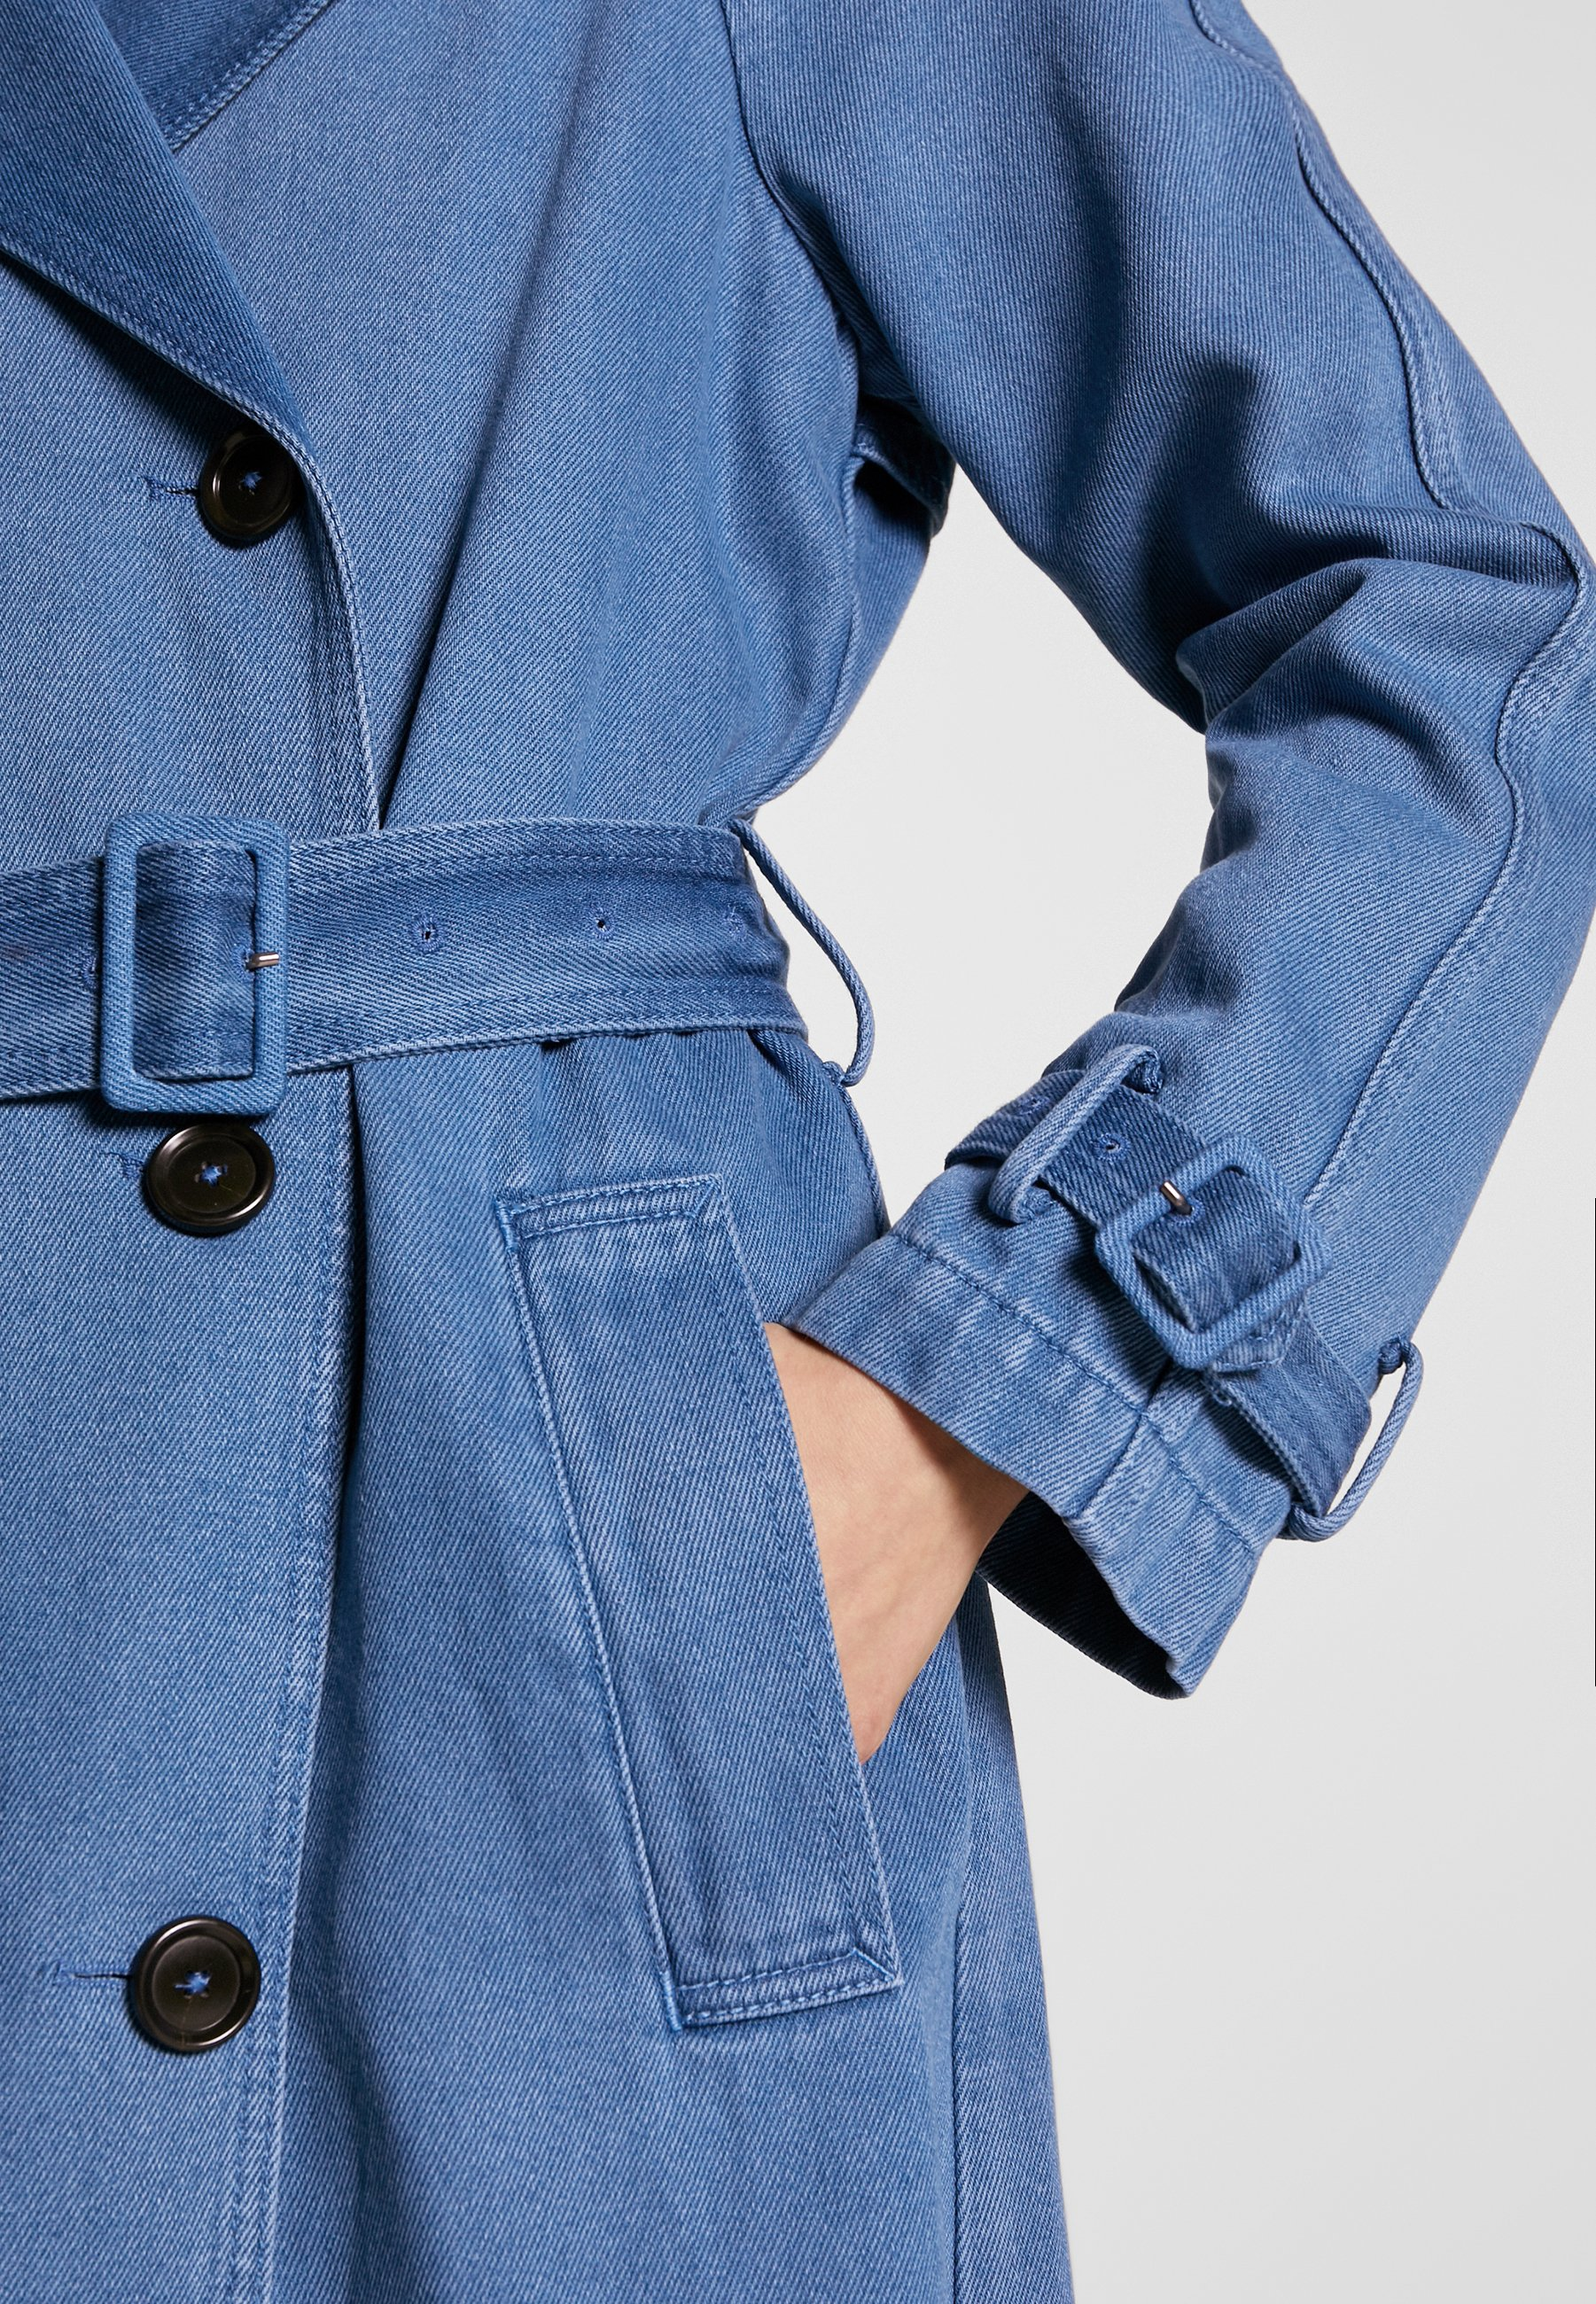 Marc O'Polo DOUBLE BREASTED WELT POCKETS BELT PLEAT - Prochowiec - blue denim